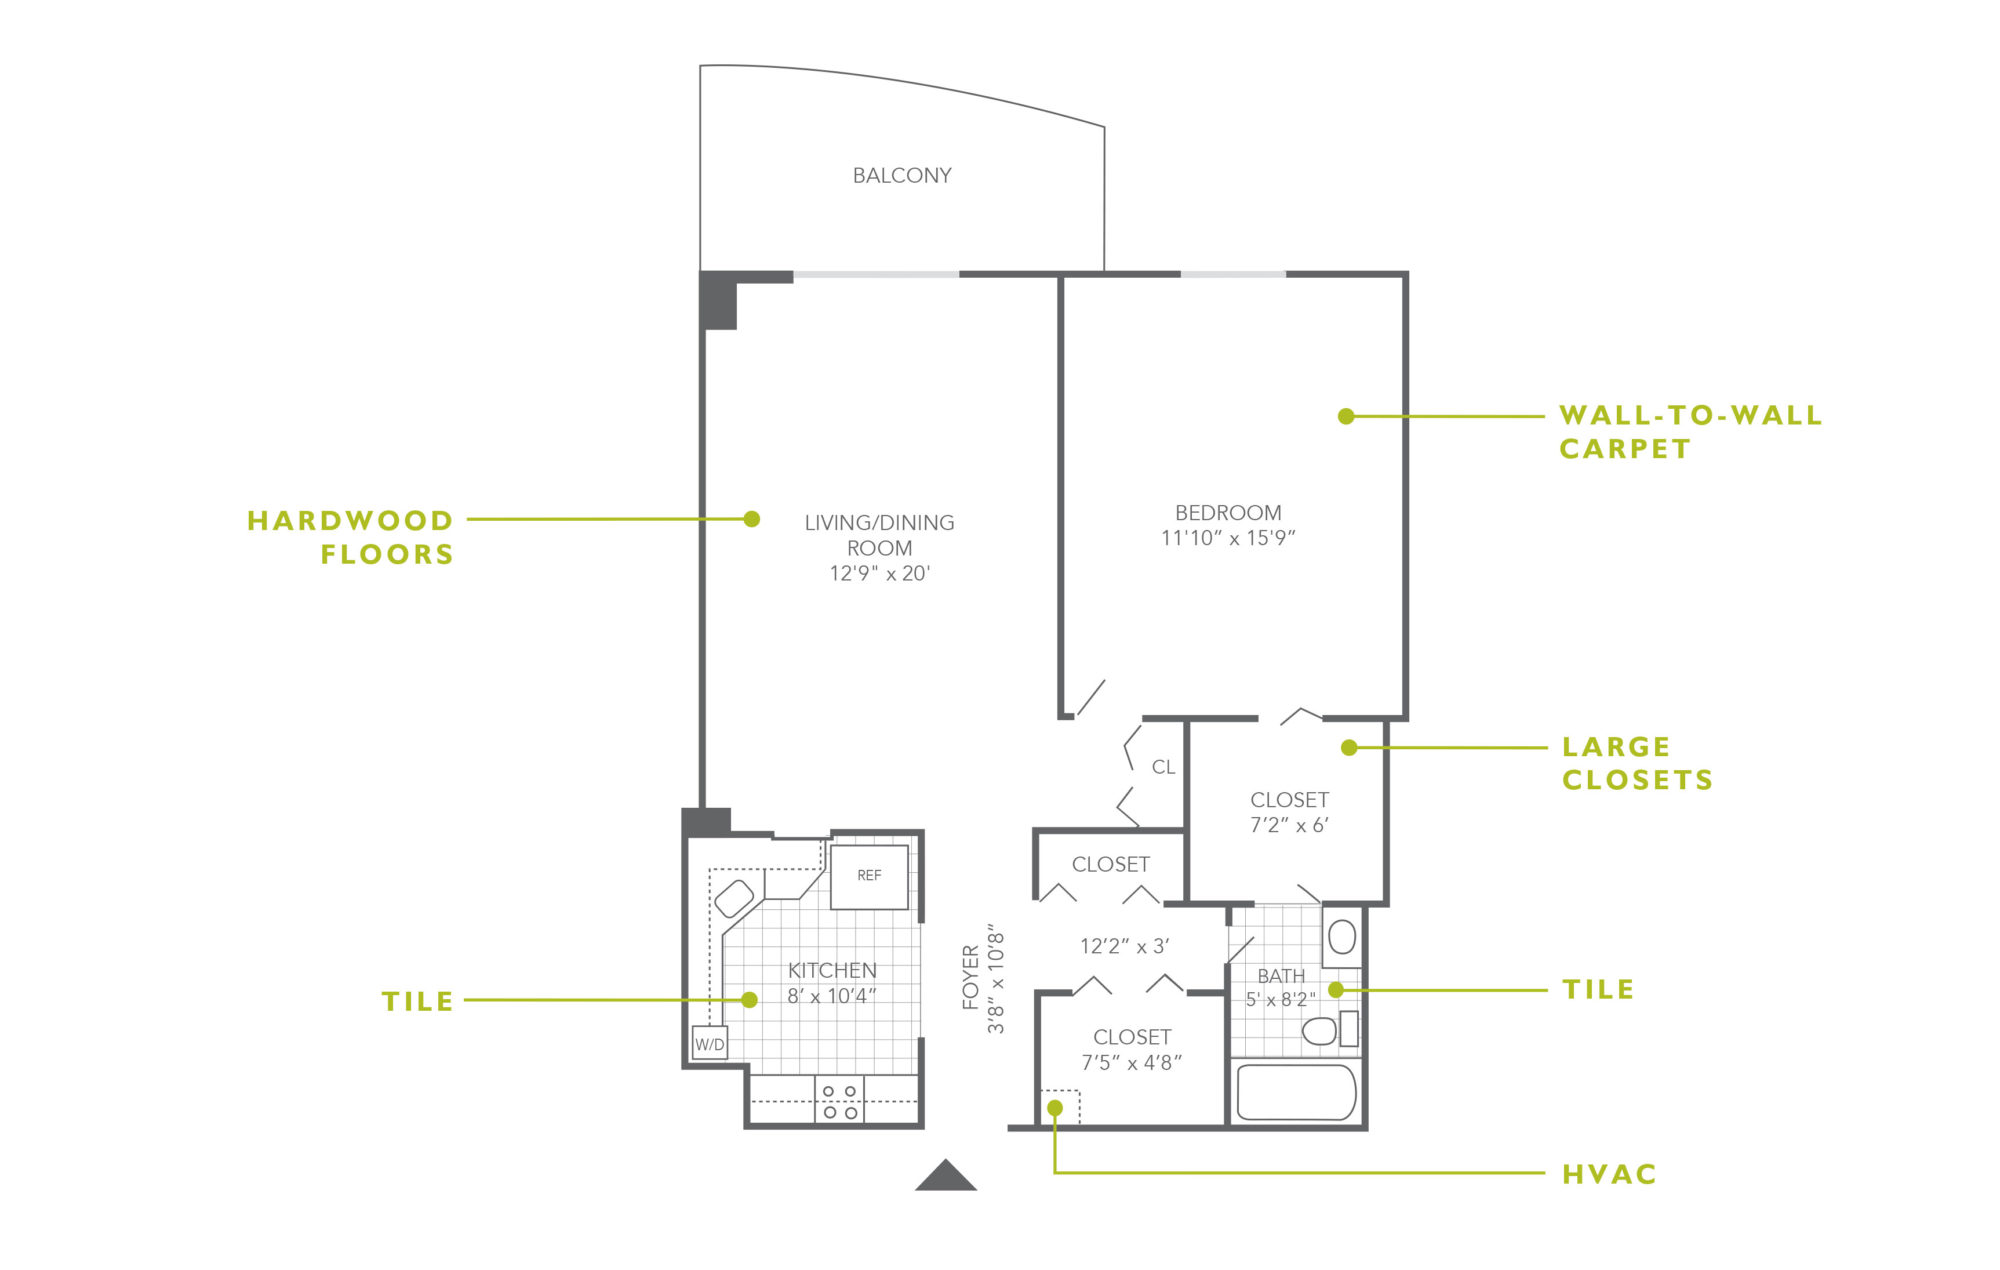 Floor plan of a 1-bedroom rental in Jenkintown at The Plaza Apartments with hardwood floors and large closets